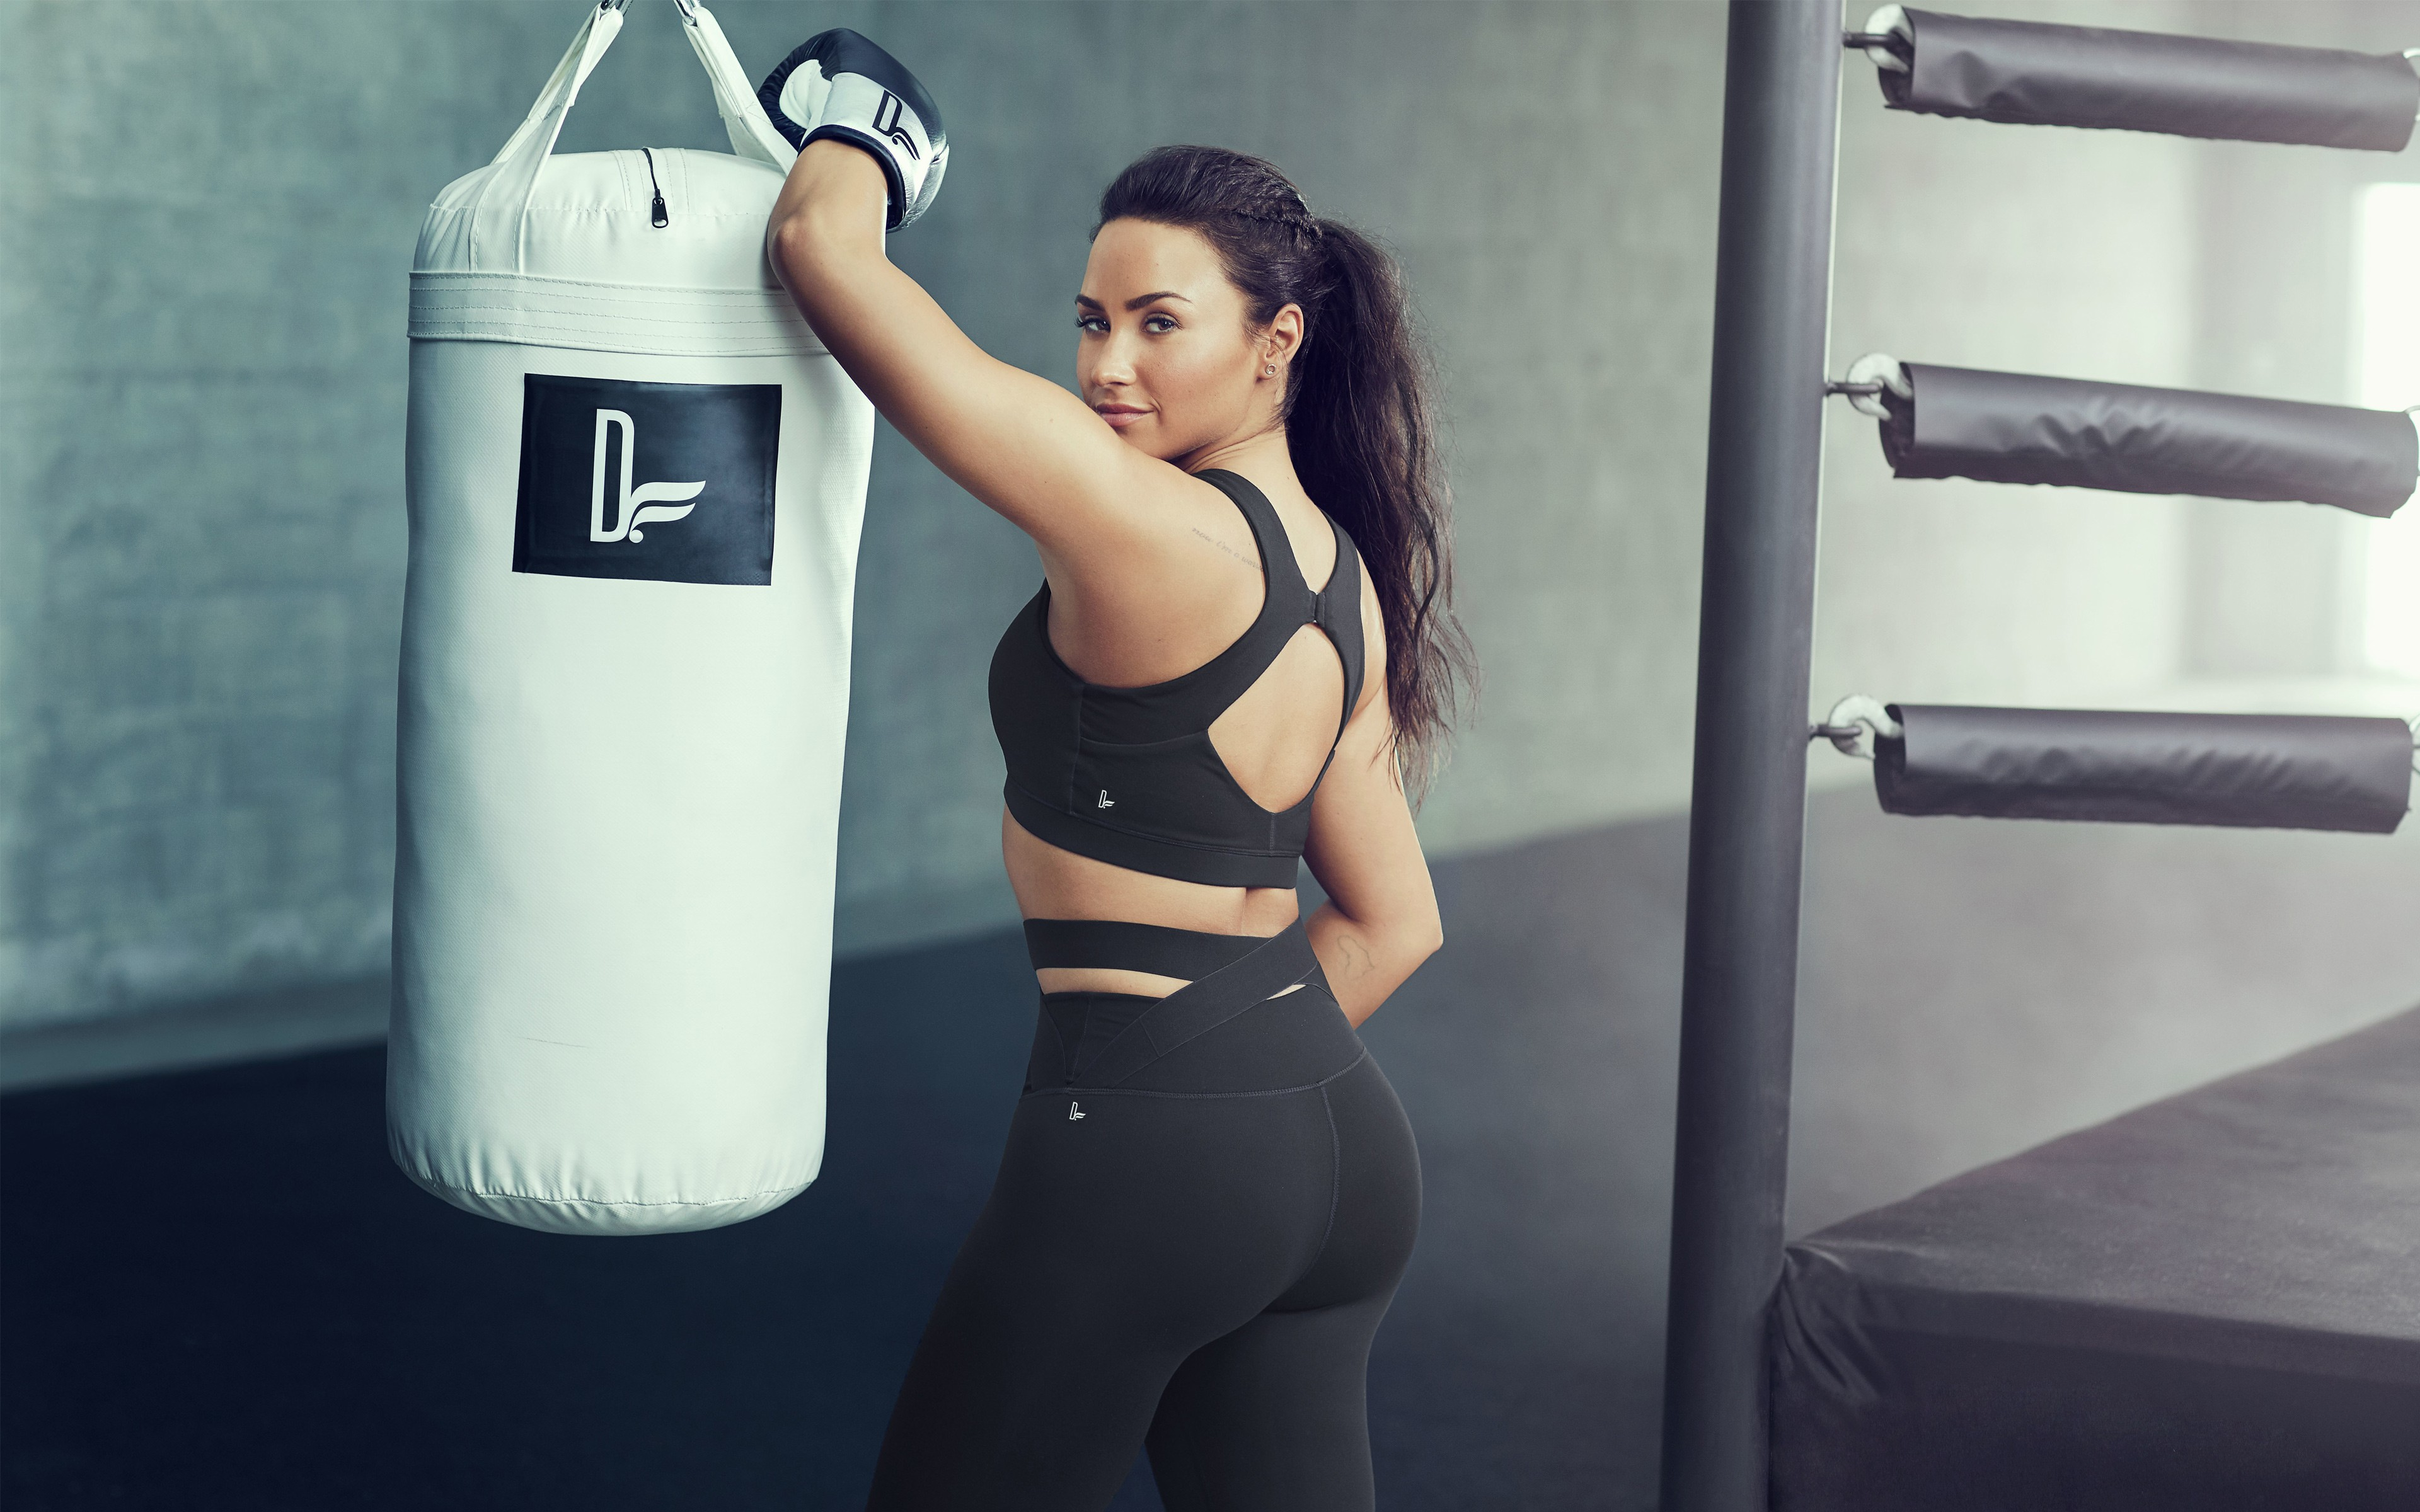 Free Wallpaper For Iphone 5s Demi Lovato Fabletics 4k 8k 2017 Wallpapers Hd